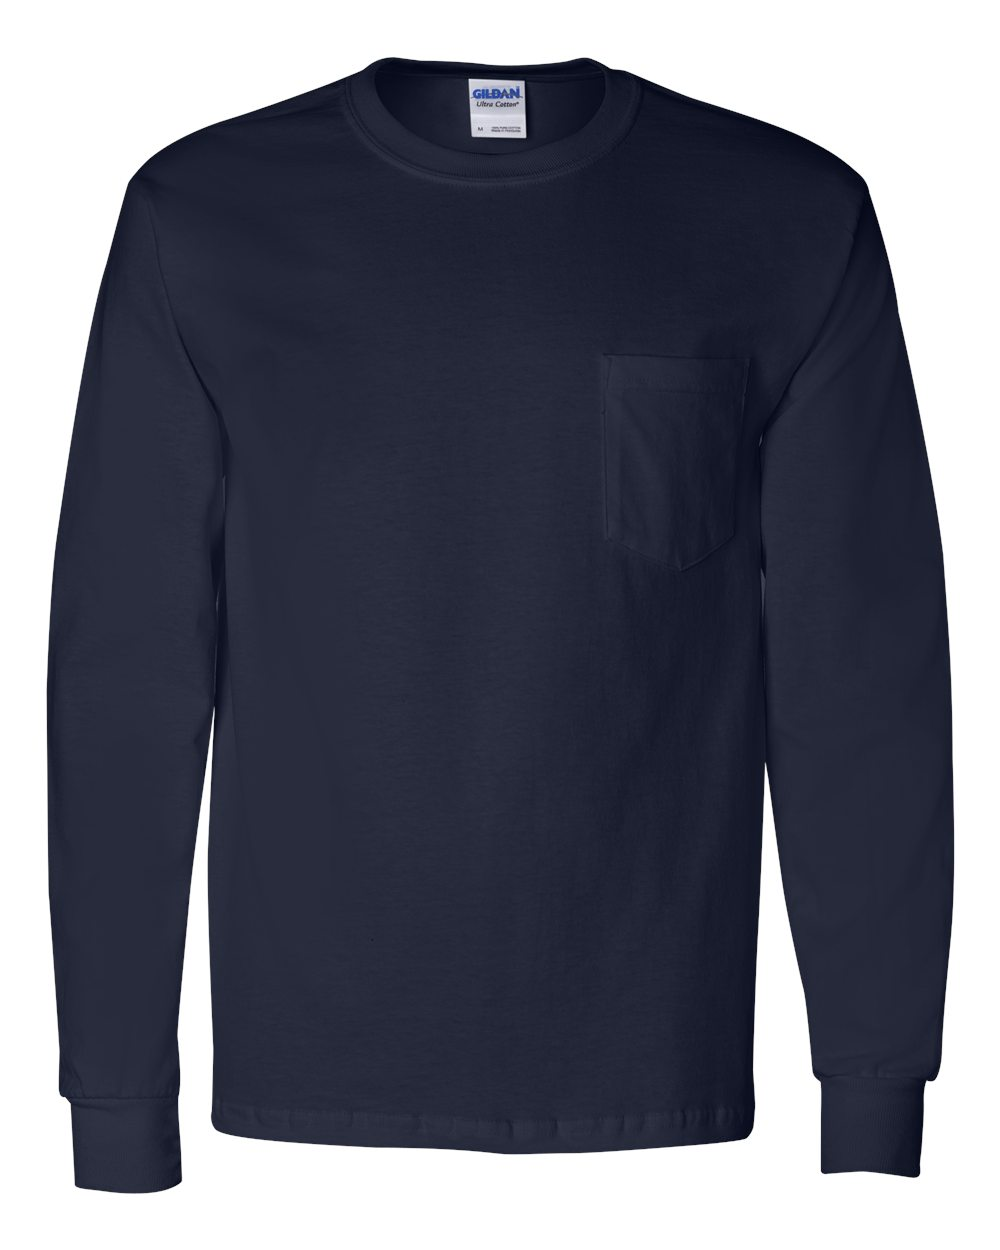 Design t shirt long sleeve - Design T Shirt Long Sleeve 8